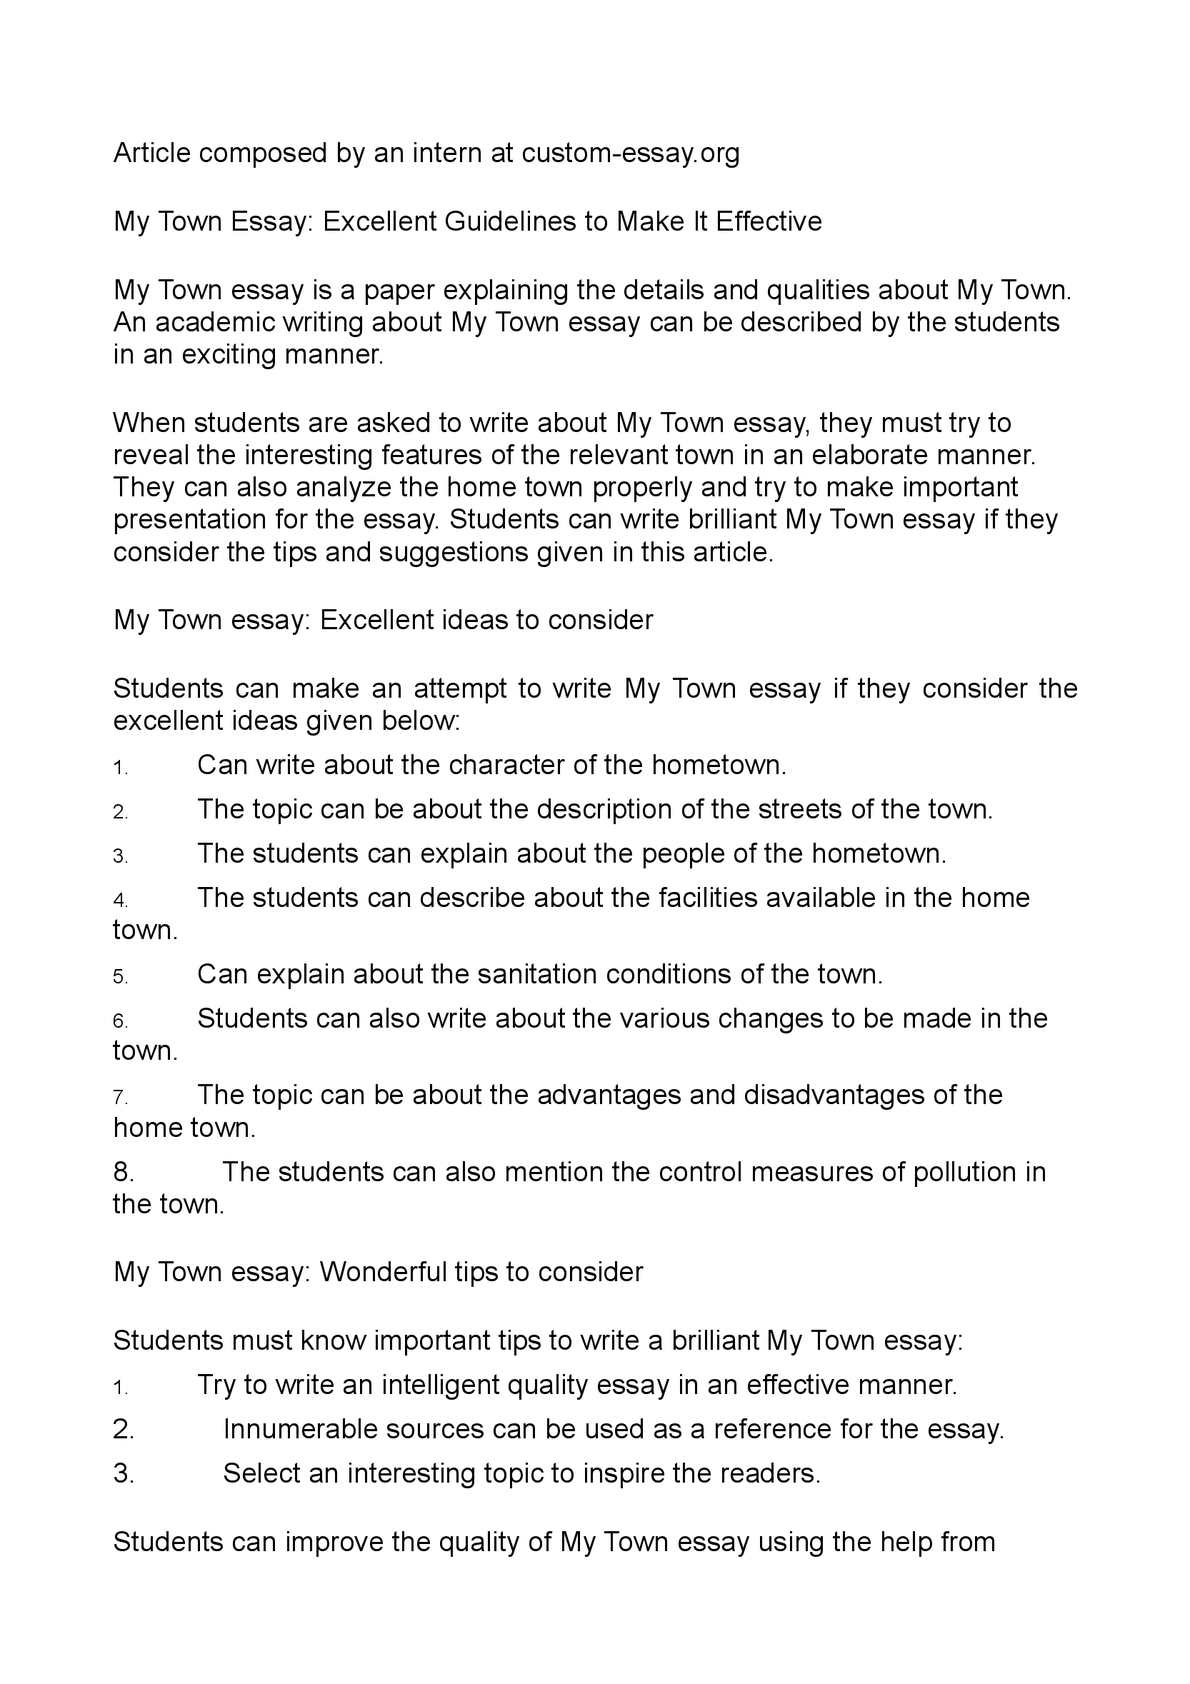 my town essay excellent guidelines to make it effective